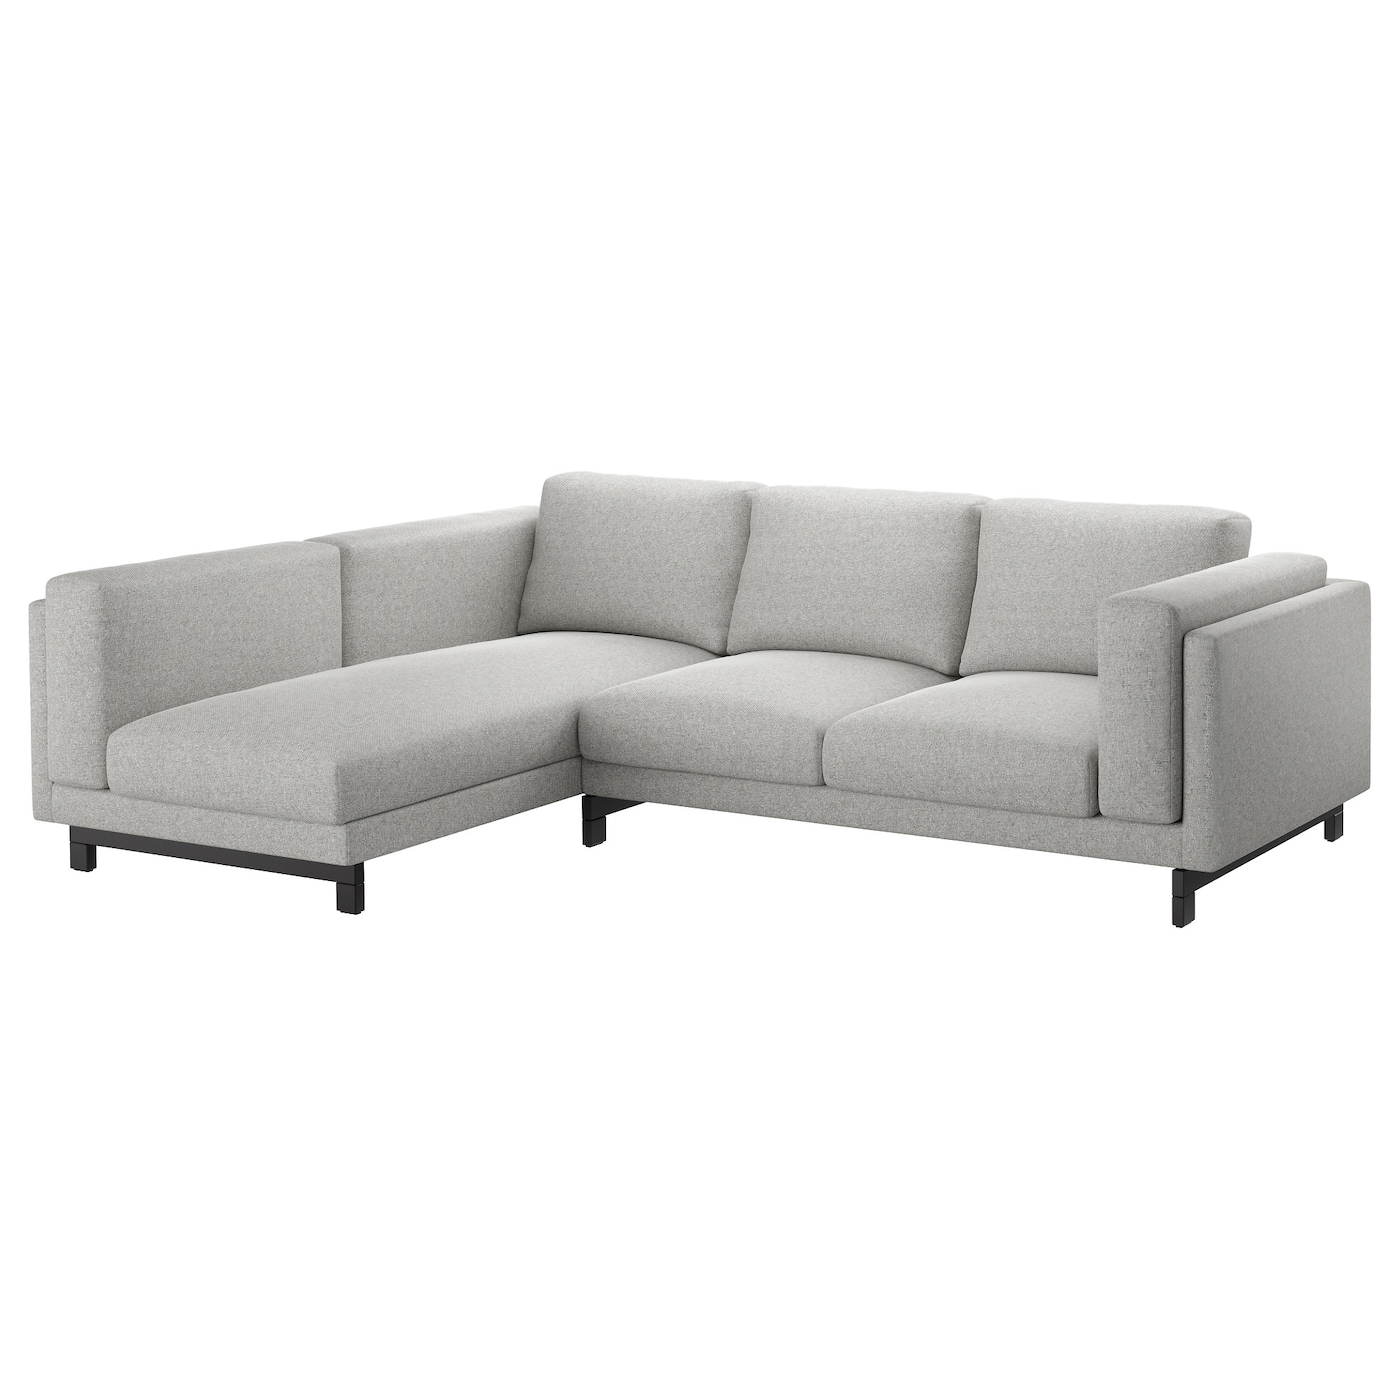 Nockeby two seat sofa w chaise longue left tallmyra white for Oferta sofa cama chaise longue